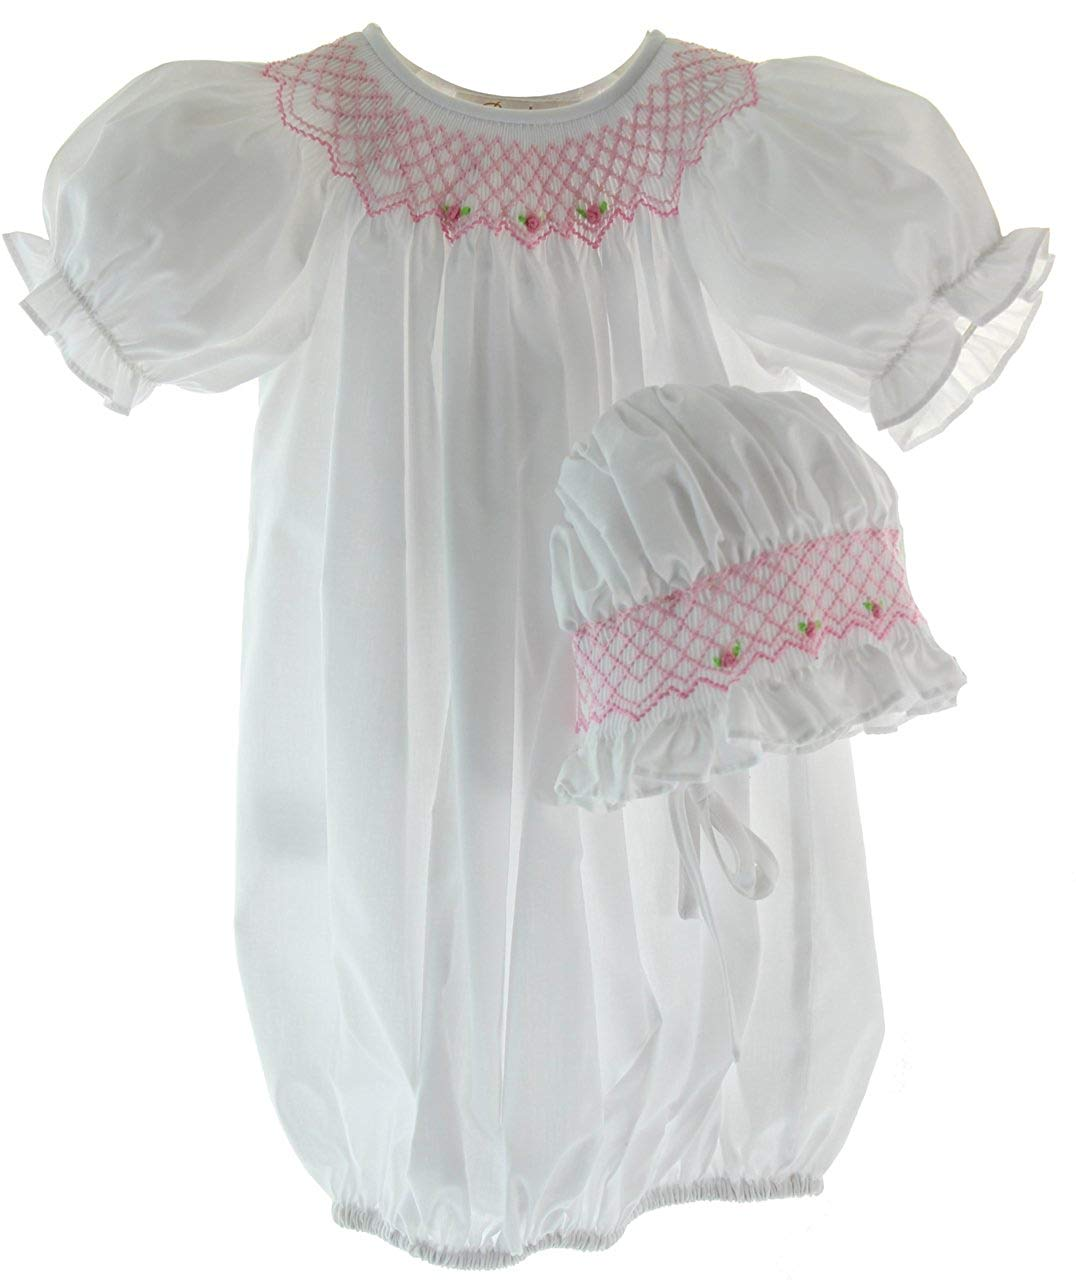 5899da6b6 Cheap Plain White Baby Gown